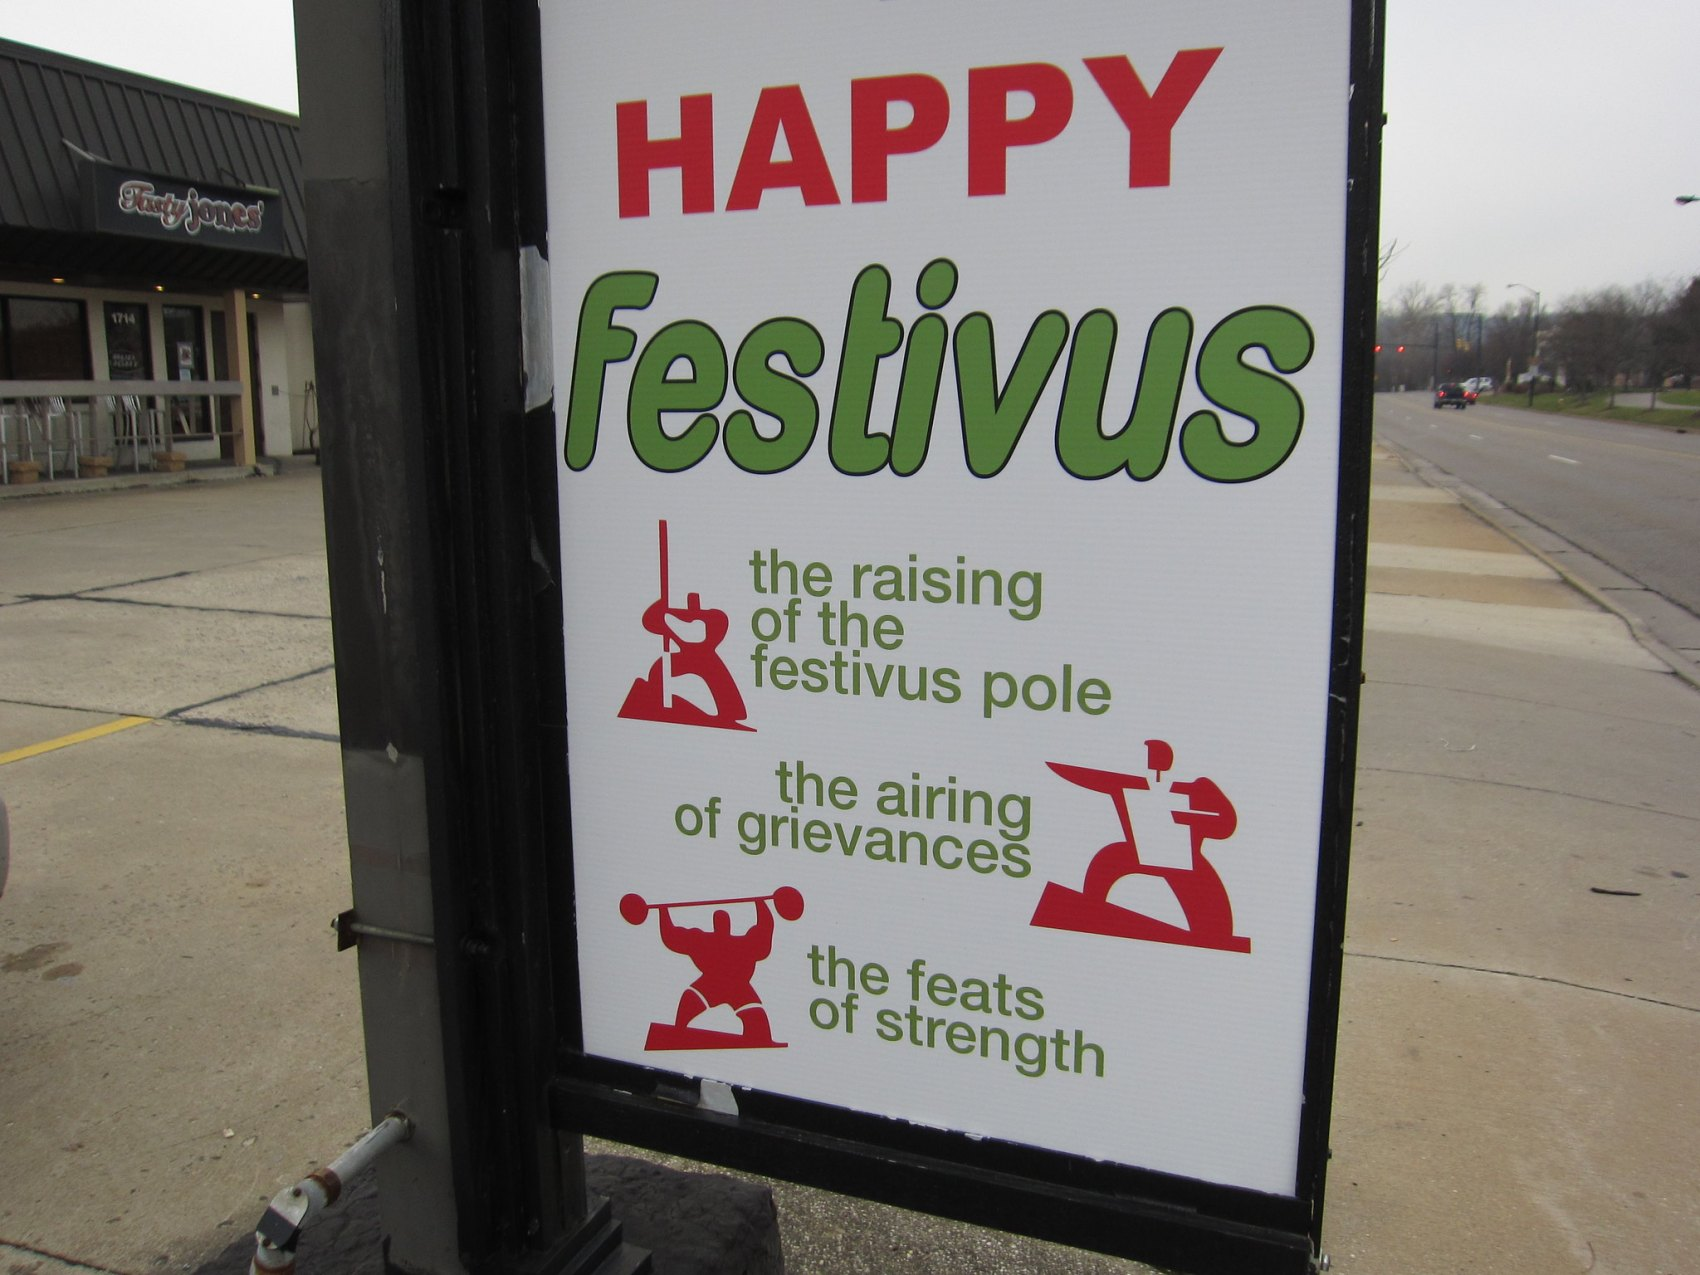 2020 was made for FESTIVUS, Festivus 2020